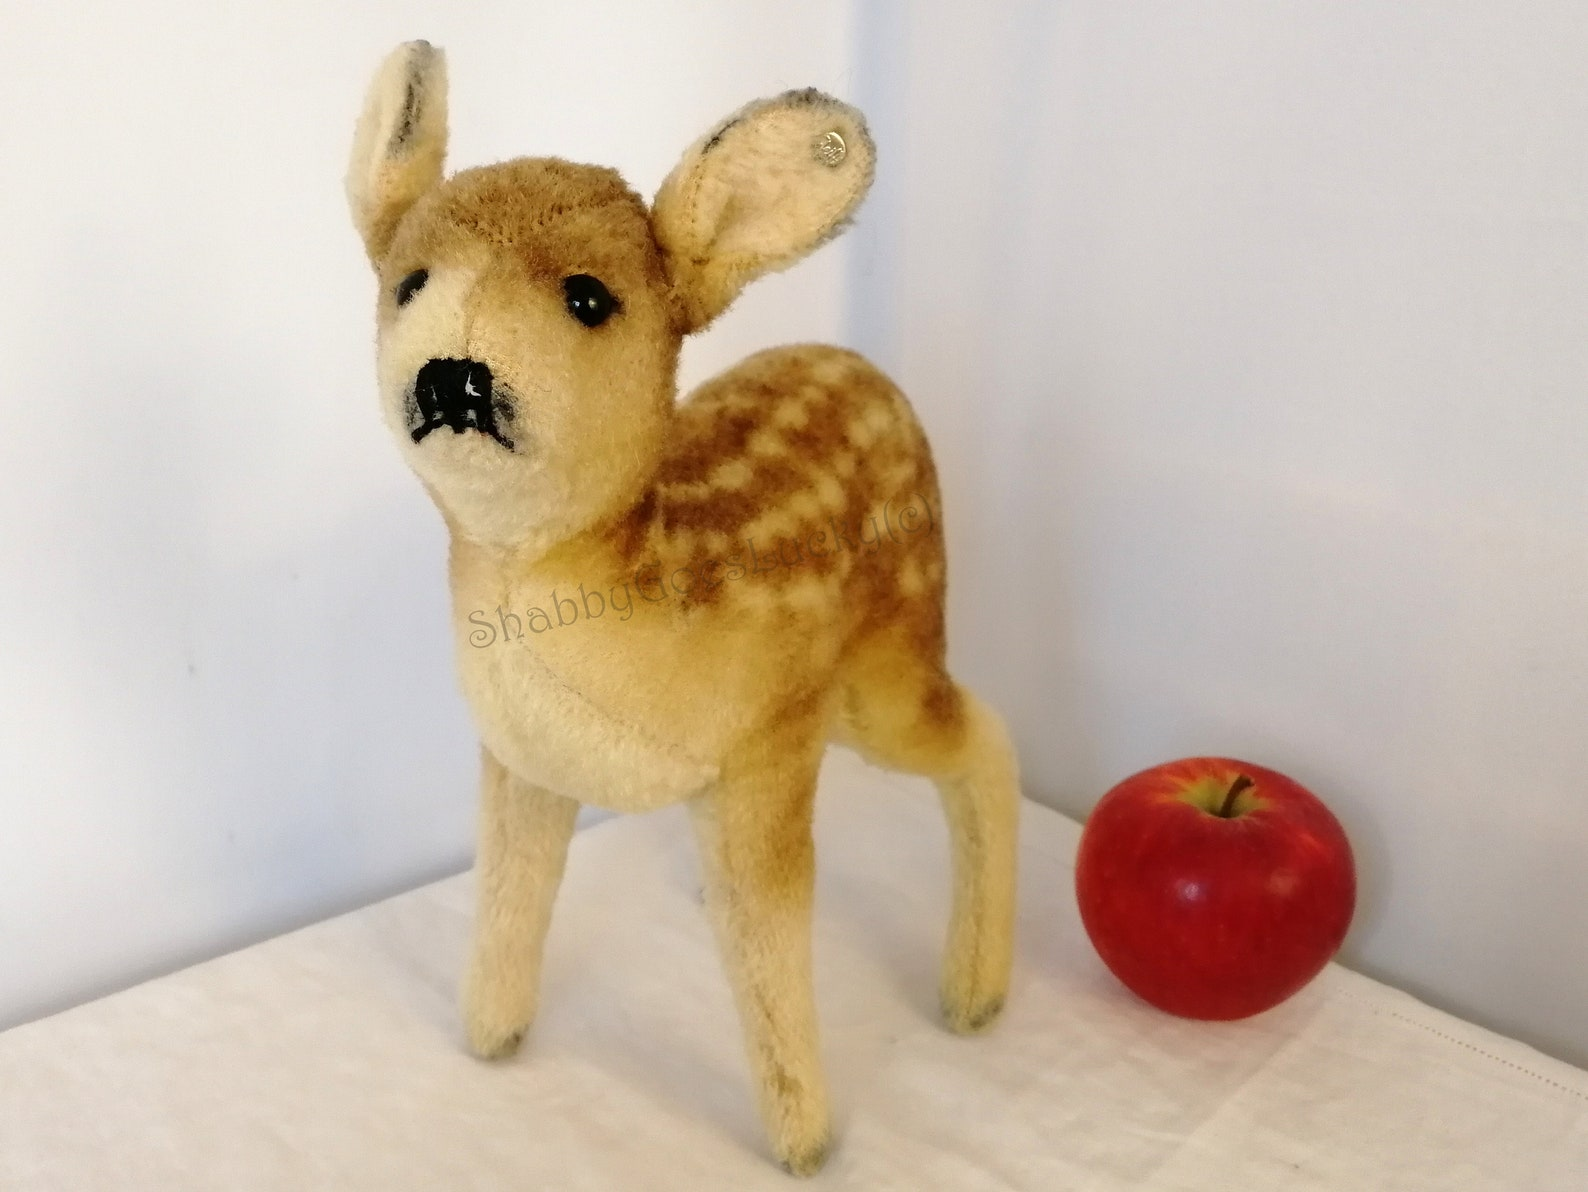 Steiff fawn deer vintage made 1949 - 1953 only, with Steiff button, 9 inch tall standing, made of wool plush